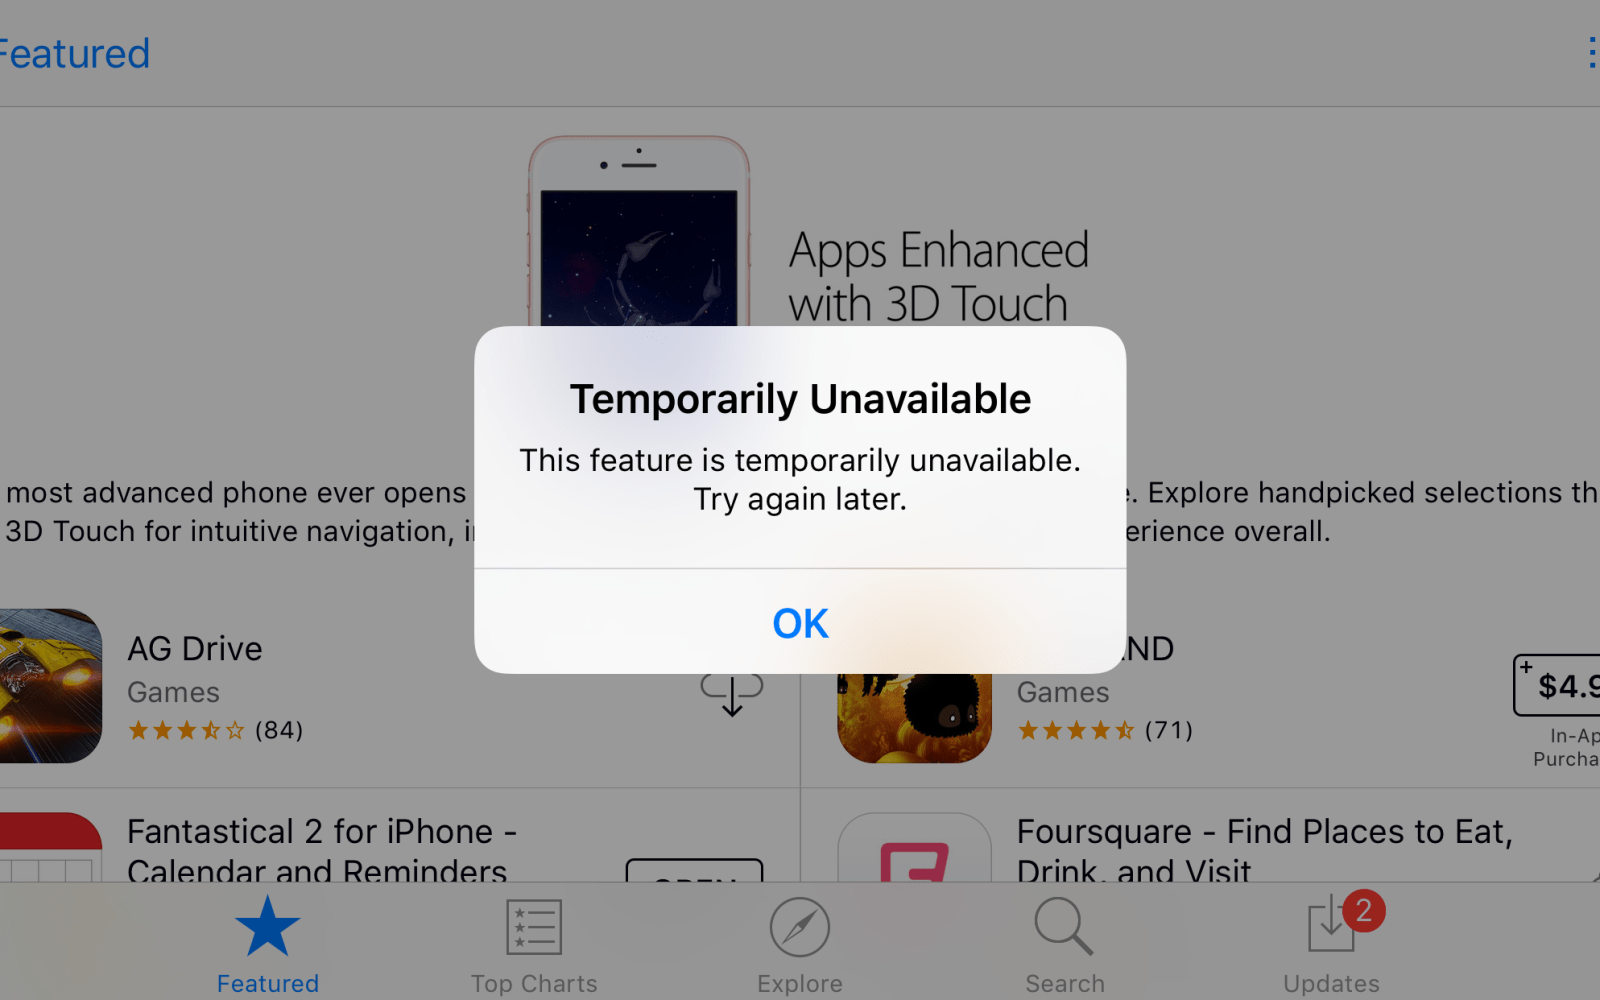 App Store 'temporarily unavailable' error preventing downloads and updates for some [U: Resolved]